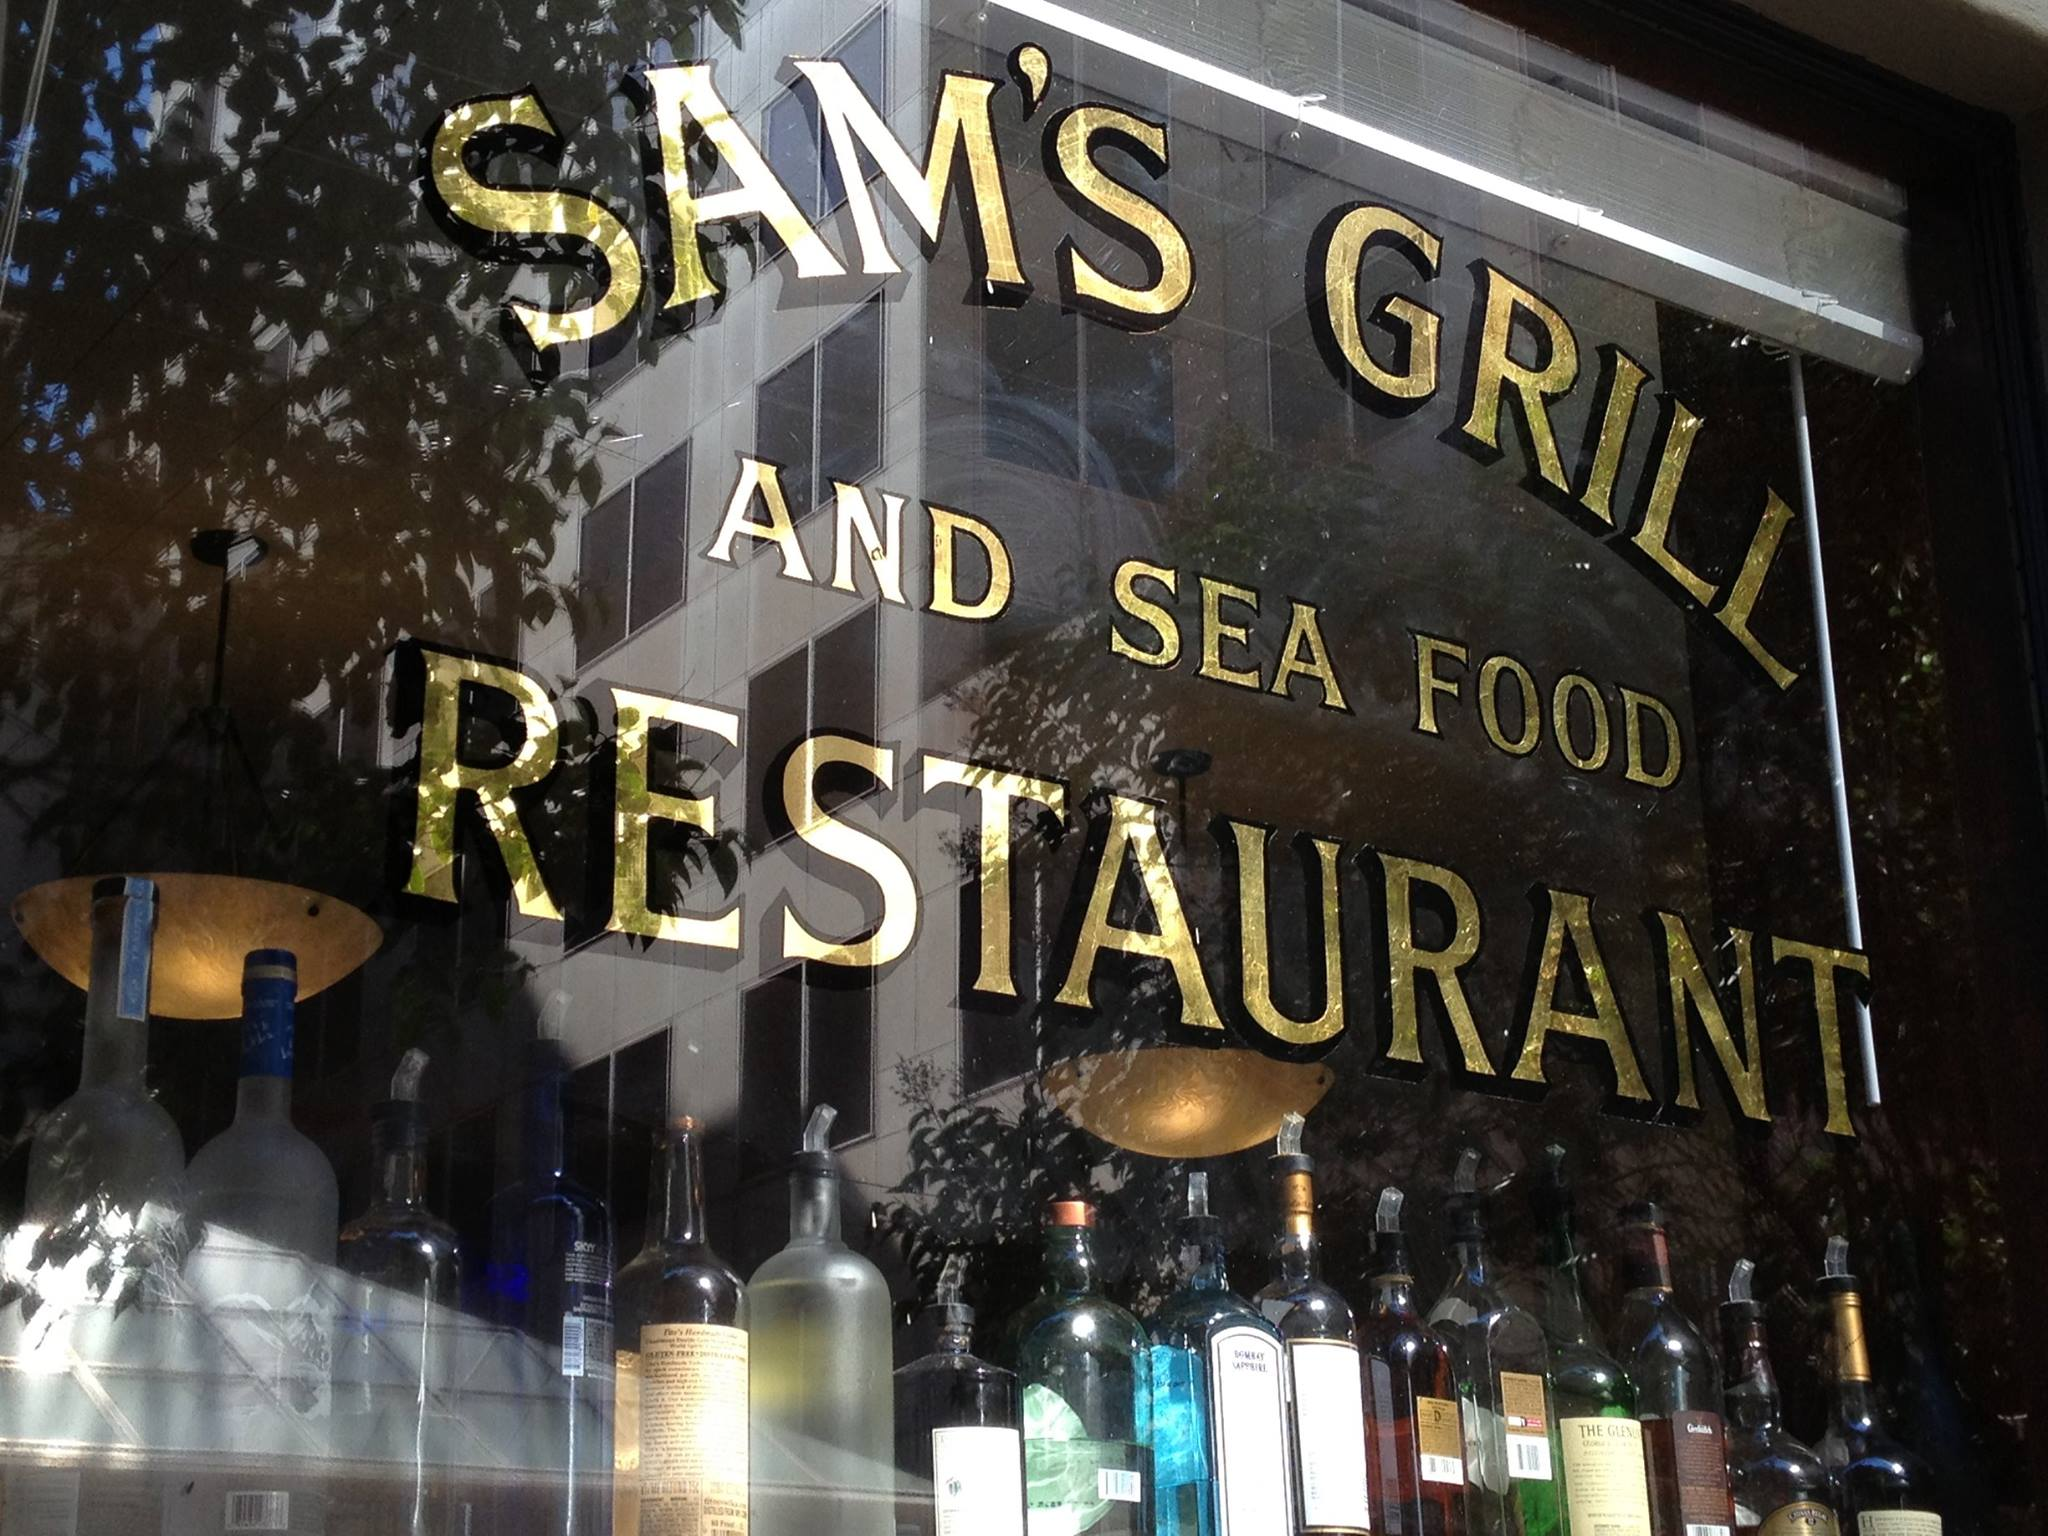 The San Francisco classic, Sam's Grill, is back in business.